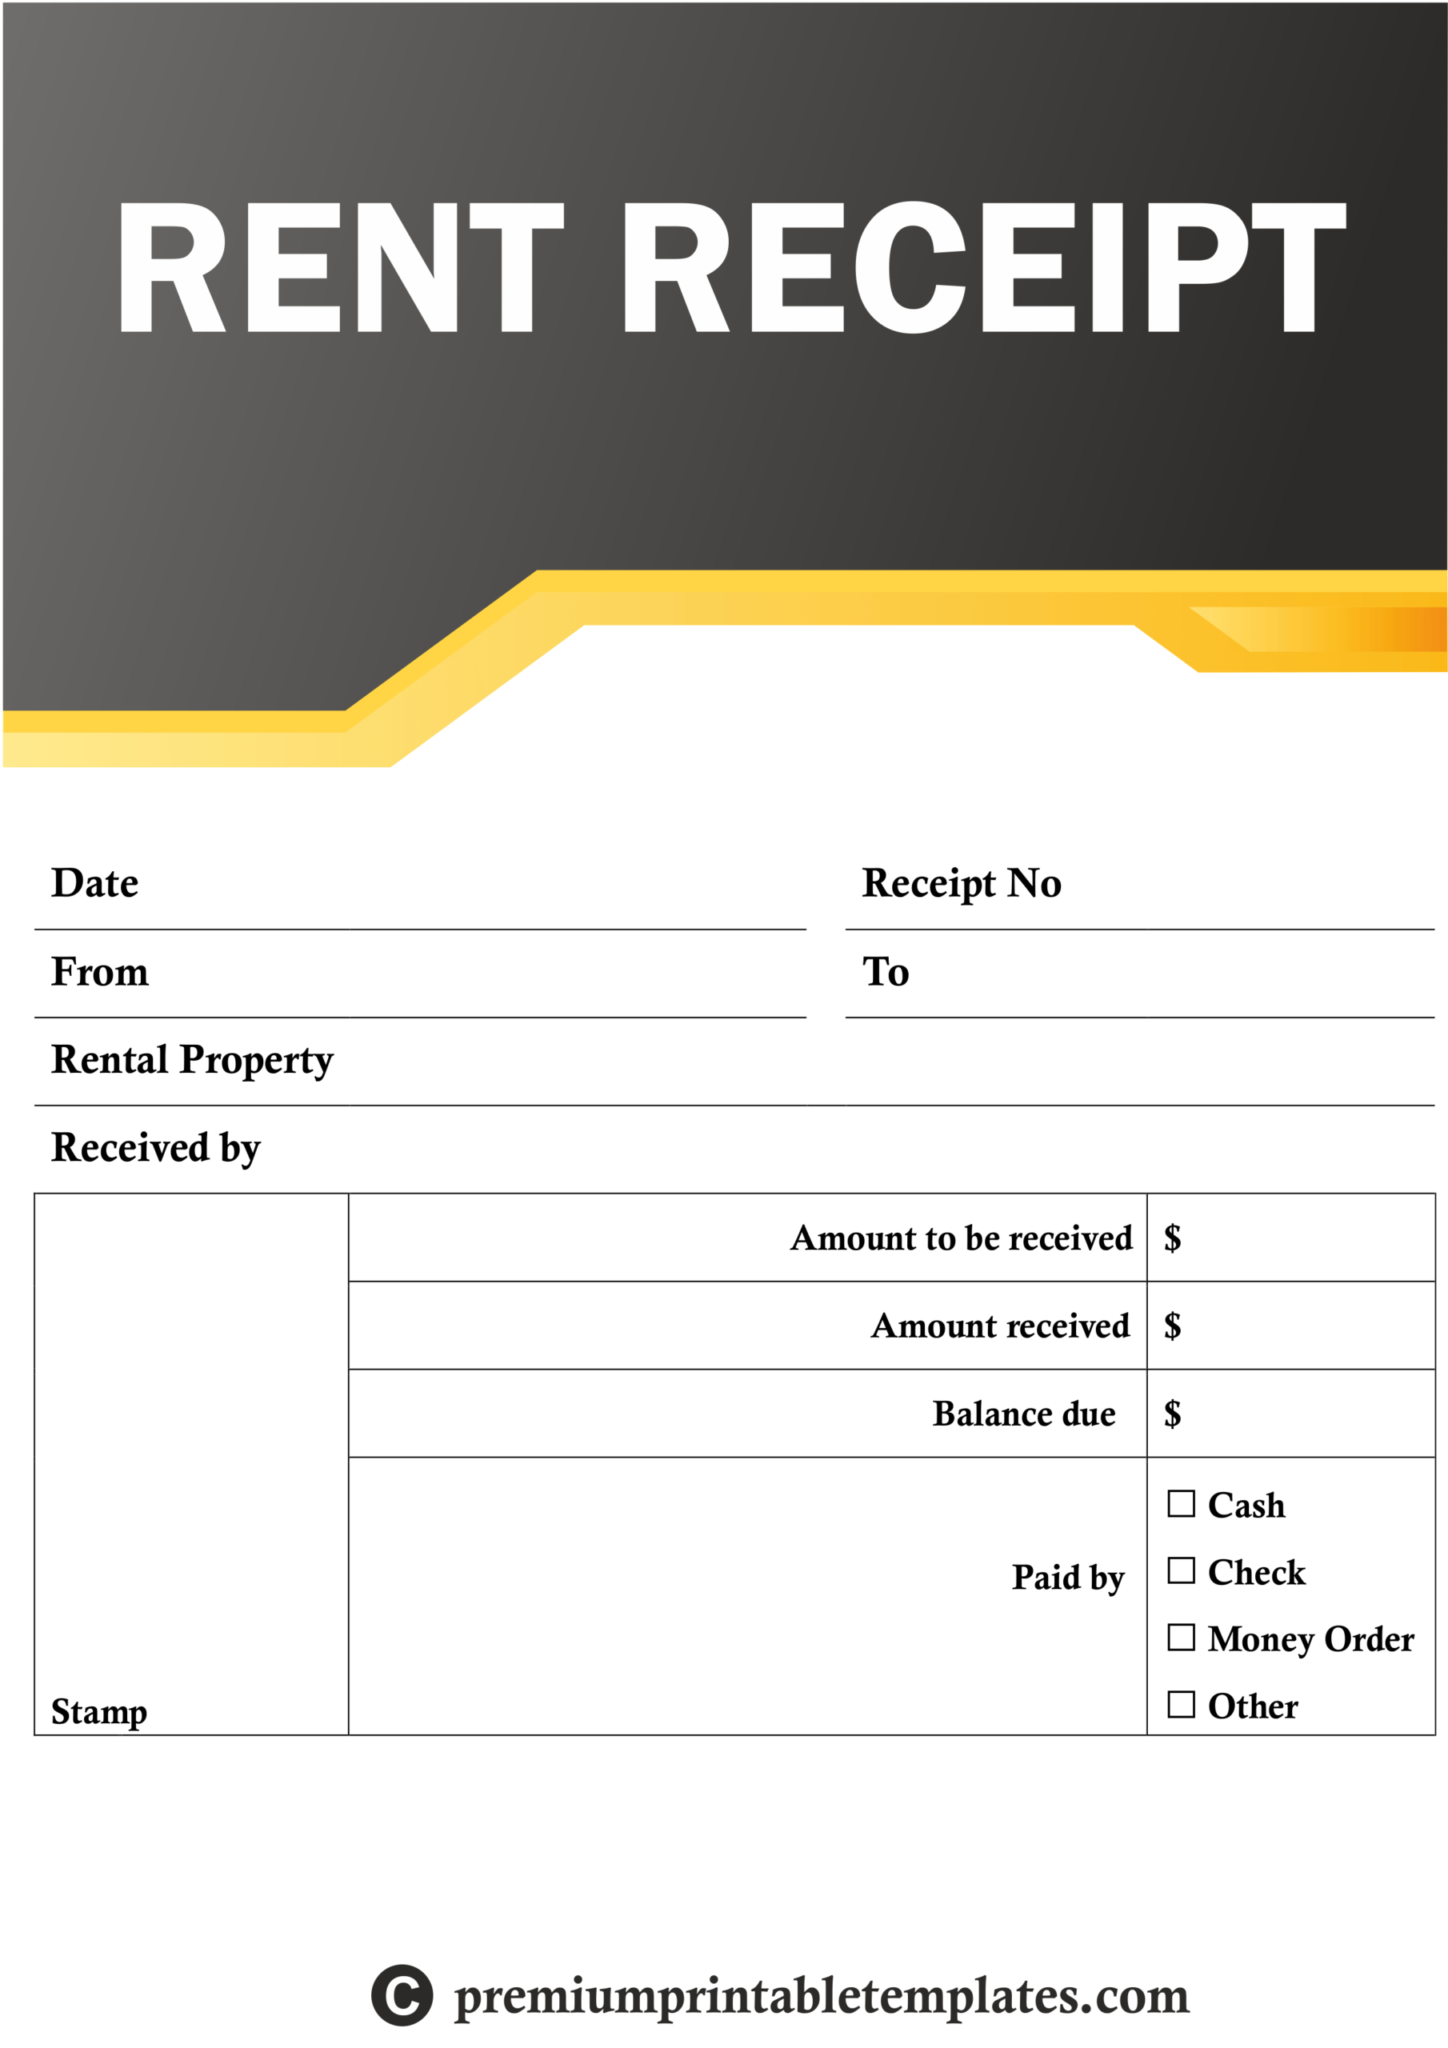 Rent Receipt Templates Premium Printable Templates Inside Blank Taxi Receipt Template Receipt Template Spreadsheet Template Rent